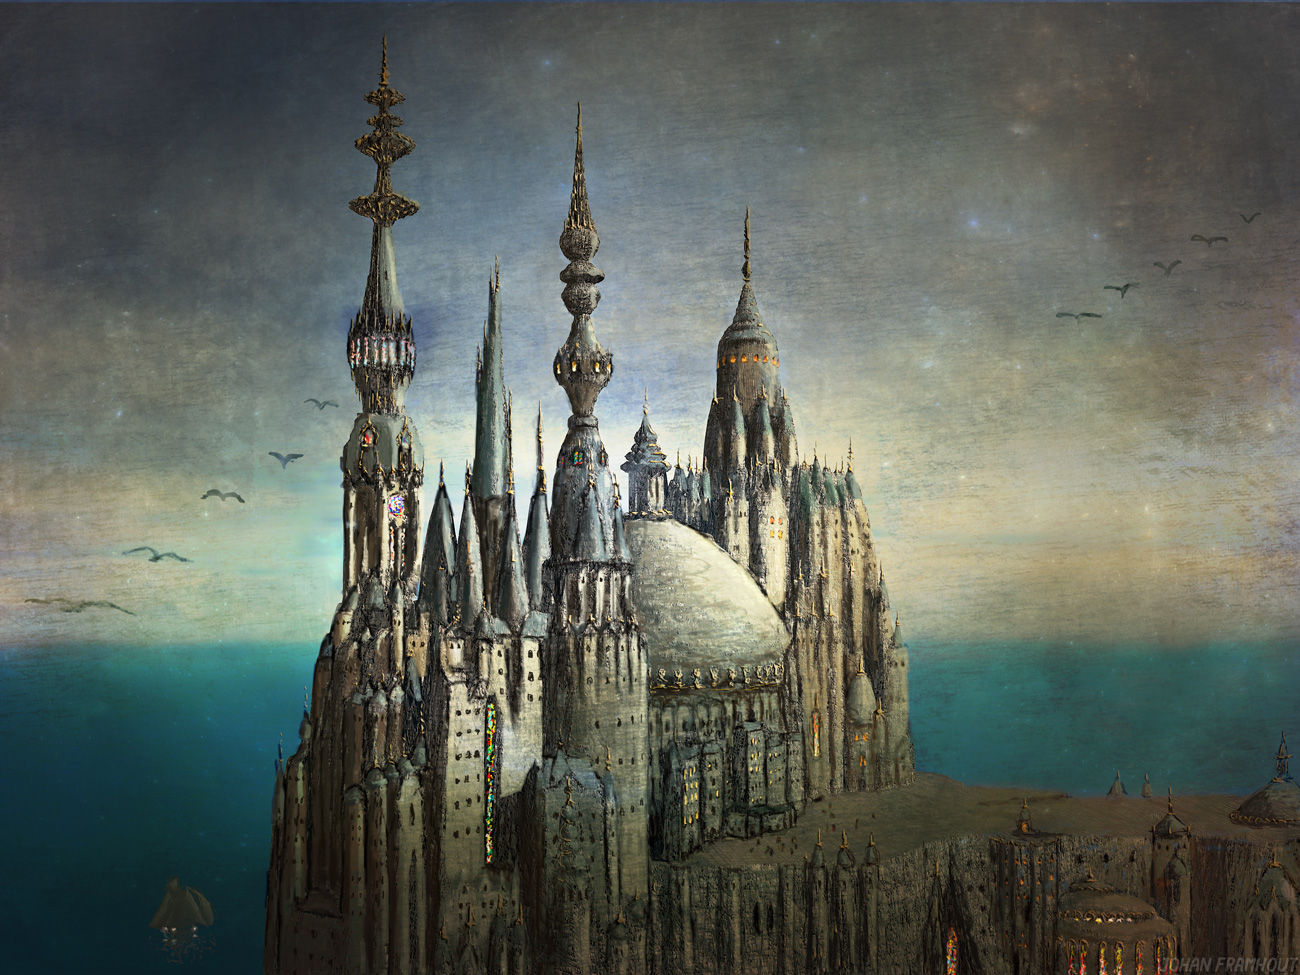 Giant cathedral, painting by Johan Framhout on art7d.be